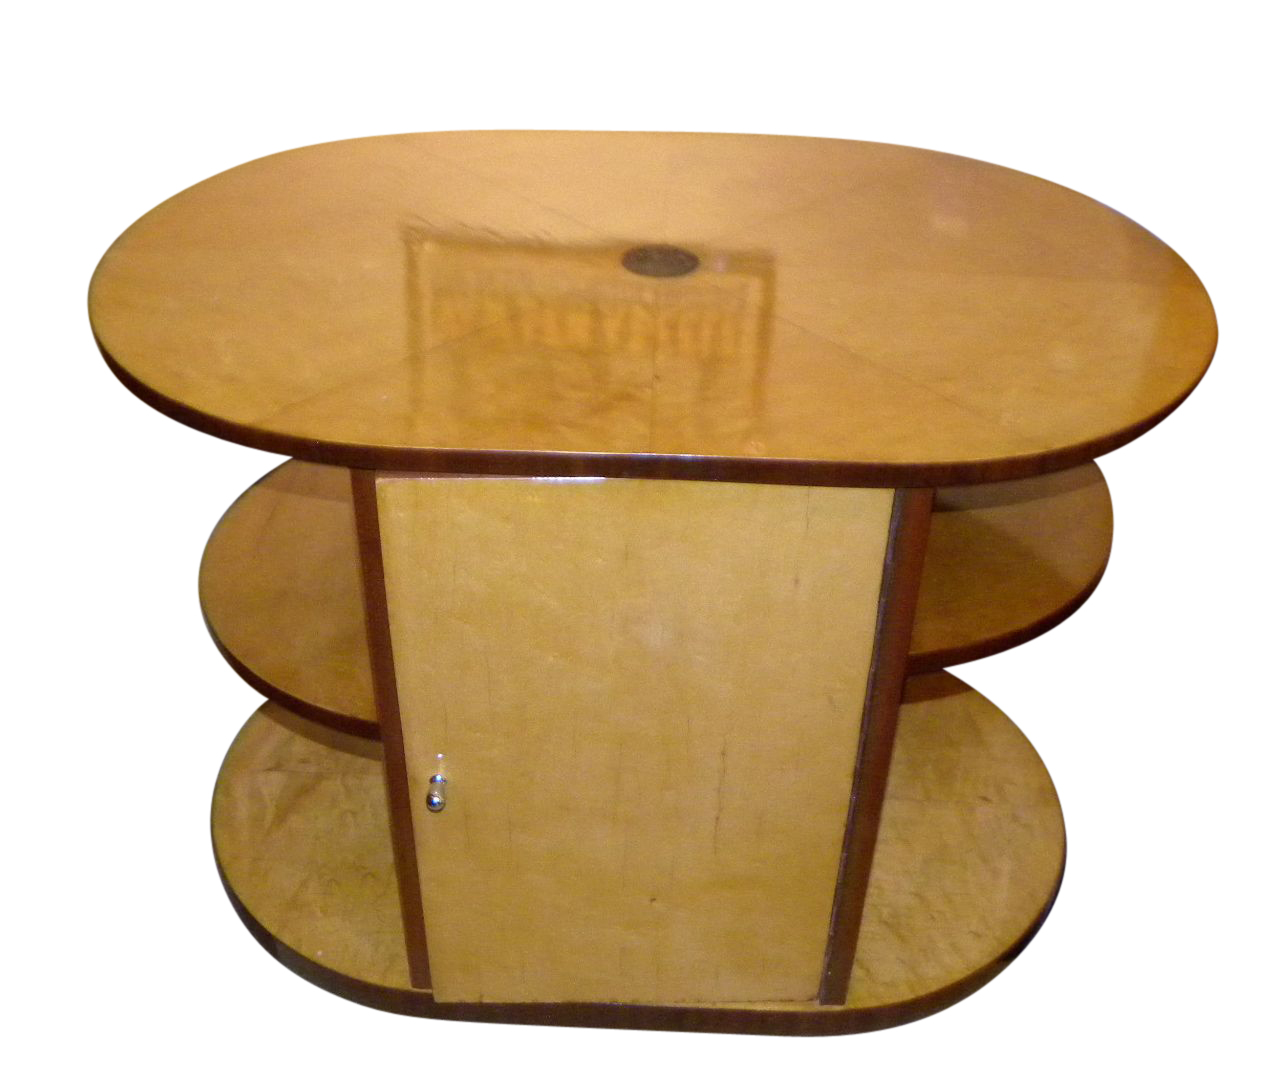 Oval Streamline Art Deco Coffee Table Or Mini Bar Small Tables Art Deco Collection